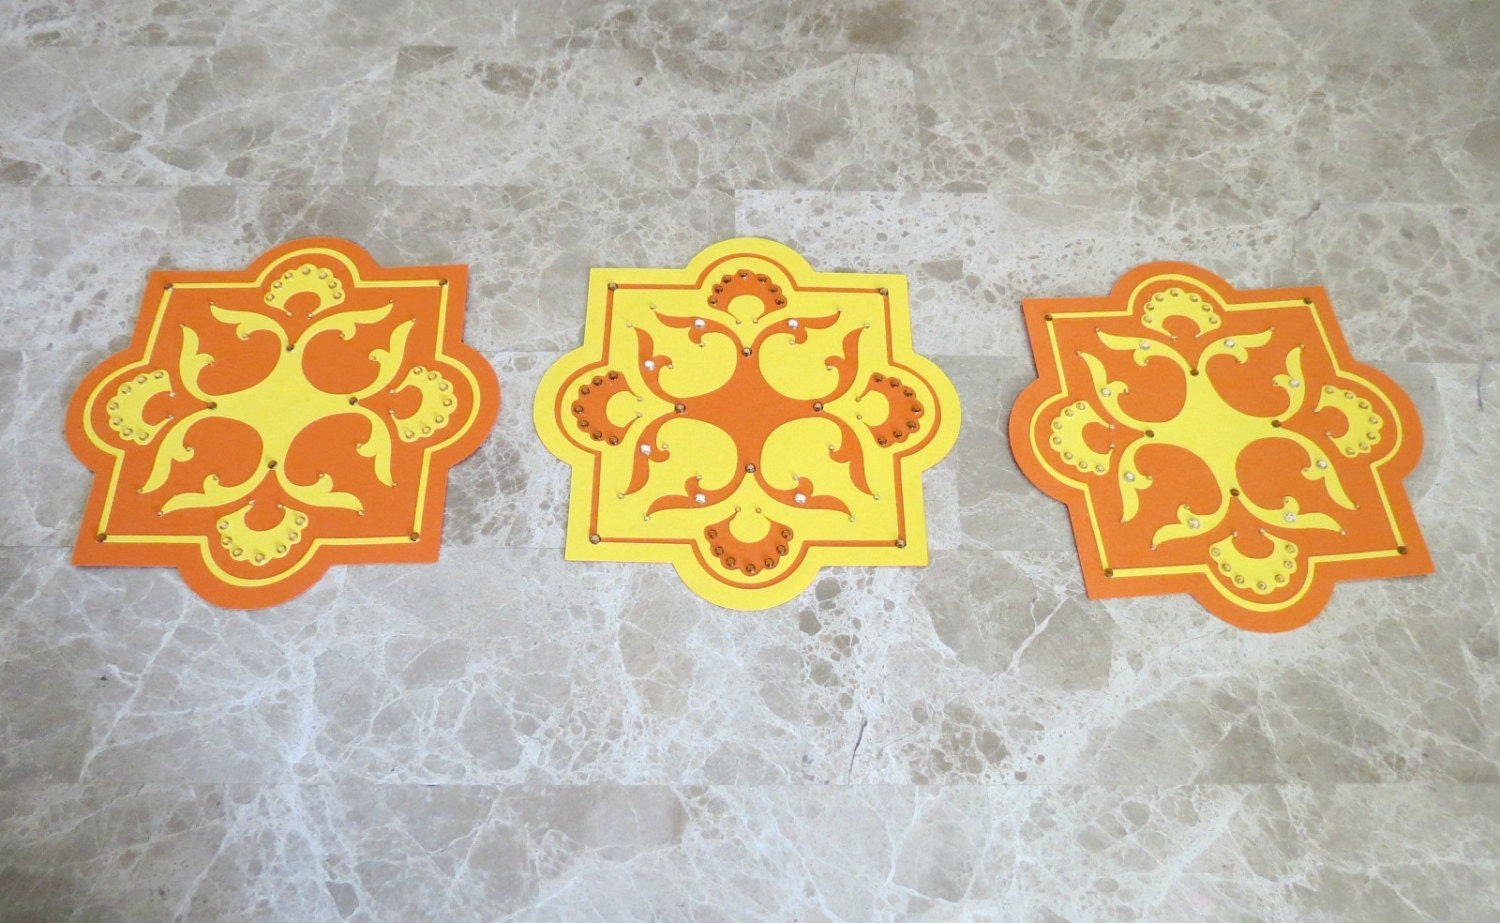 Bohemian Paper Tiles Wall Decor Moroccan Inspired Orange and Yellow ...